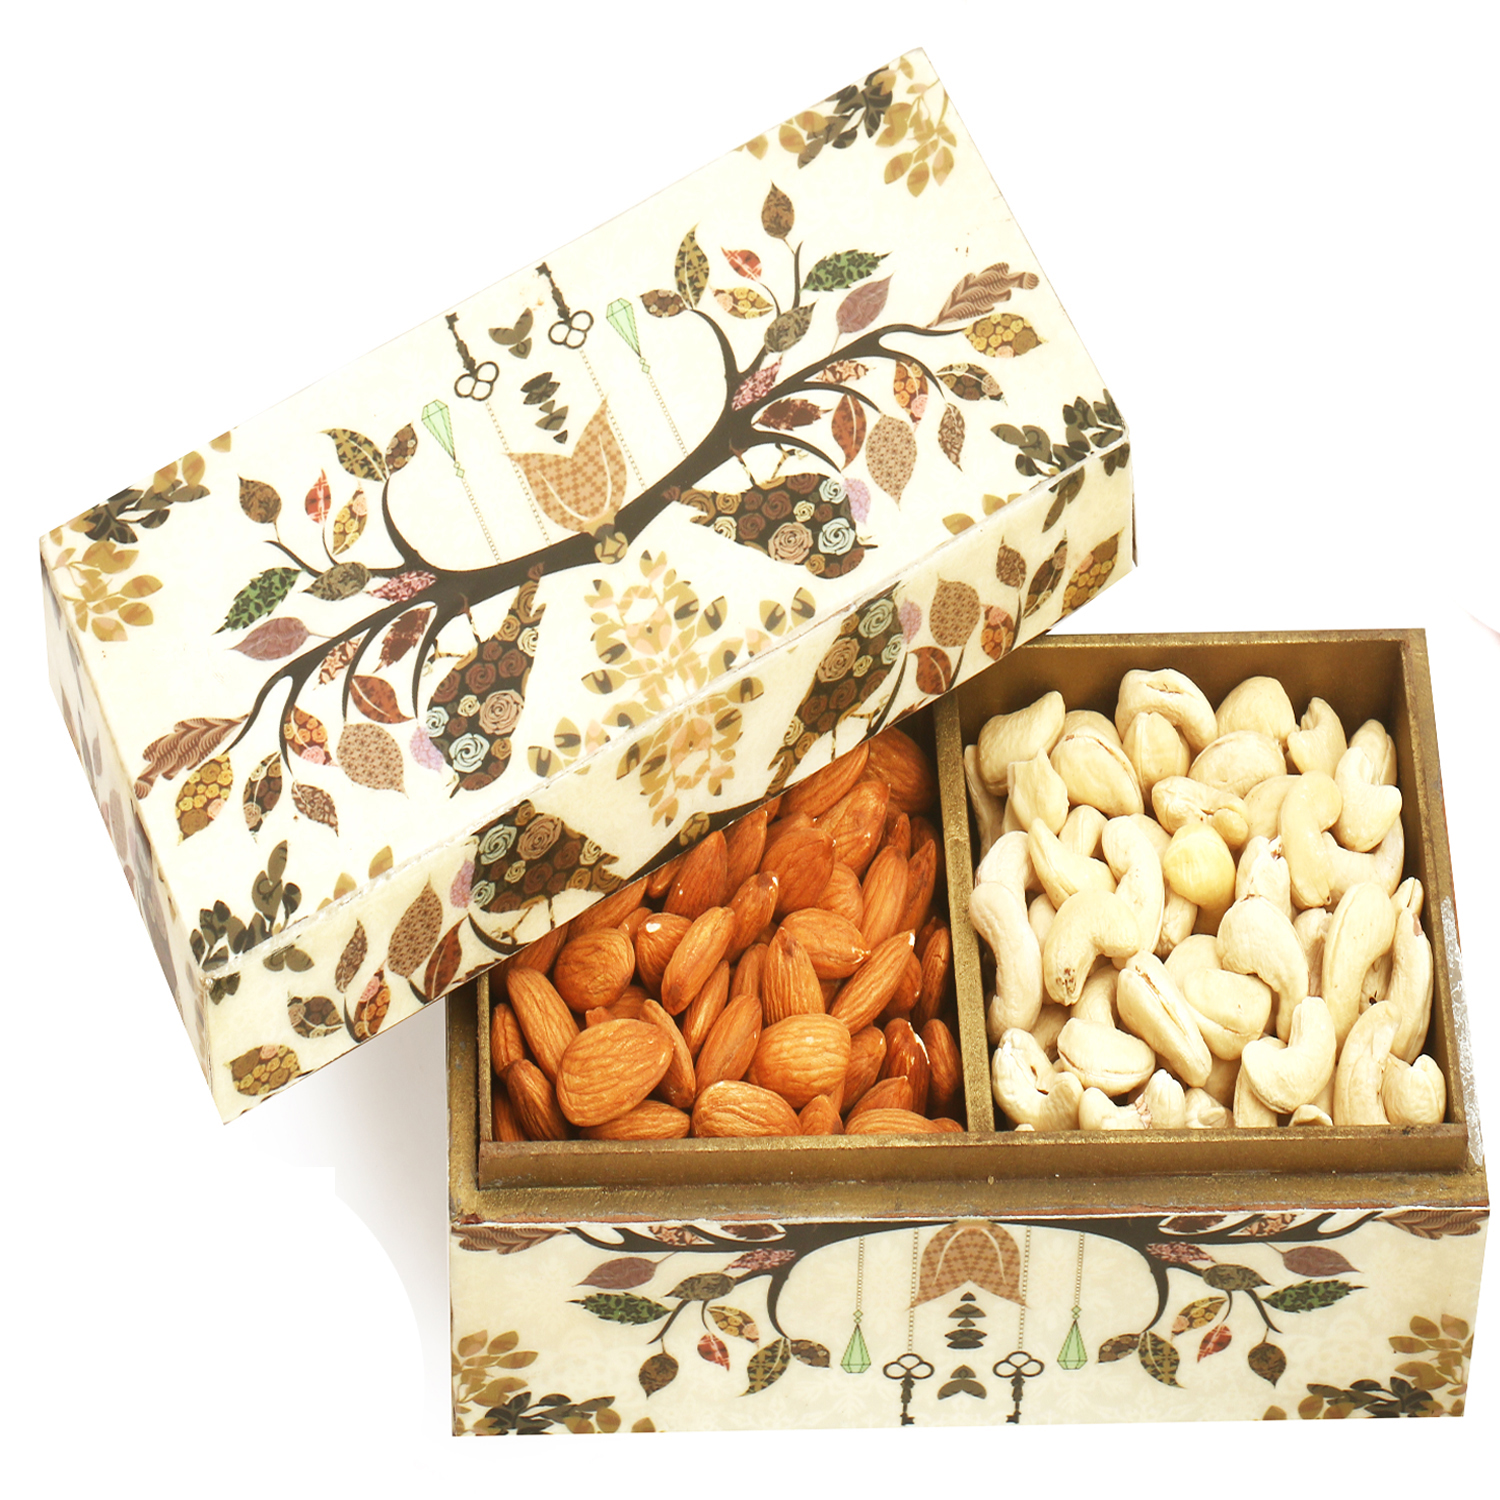 Wooden 2 part Almonds and Cashews Box